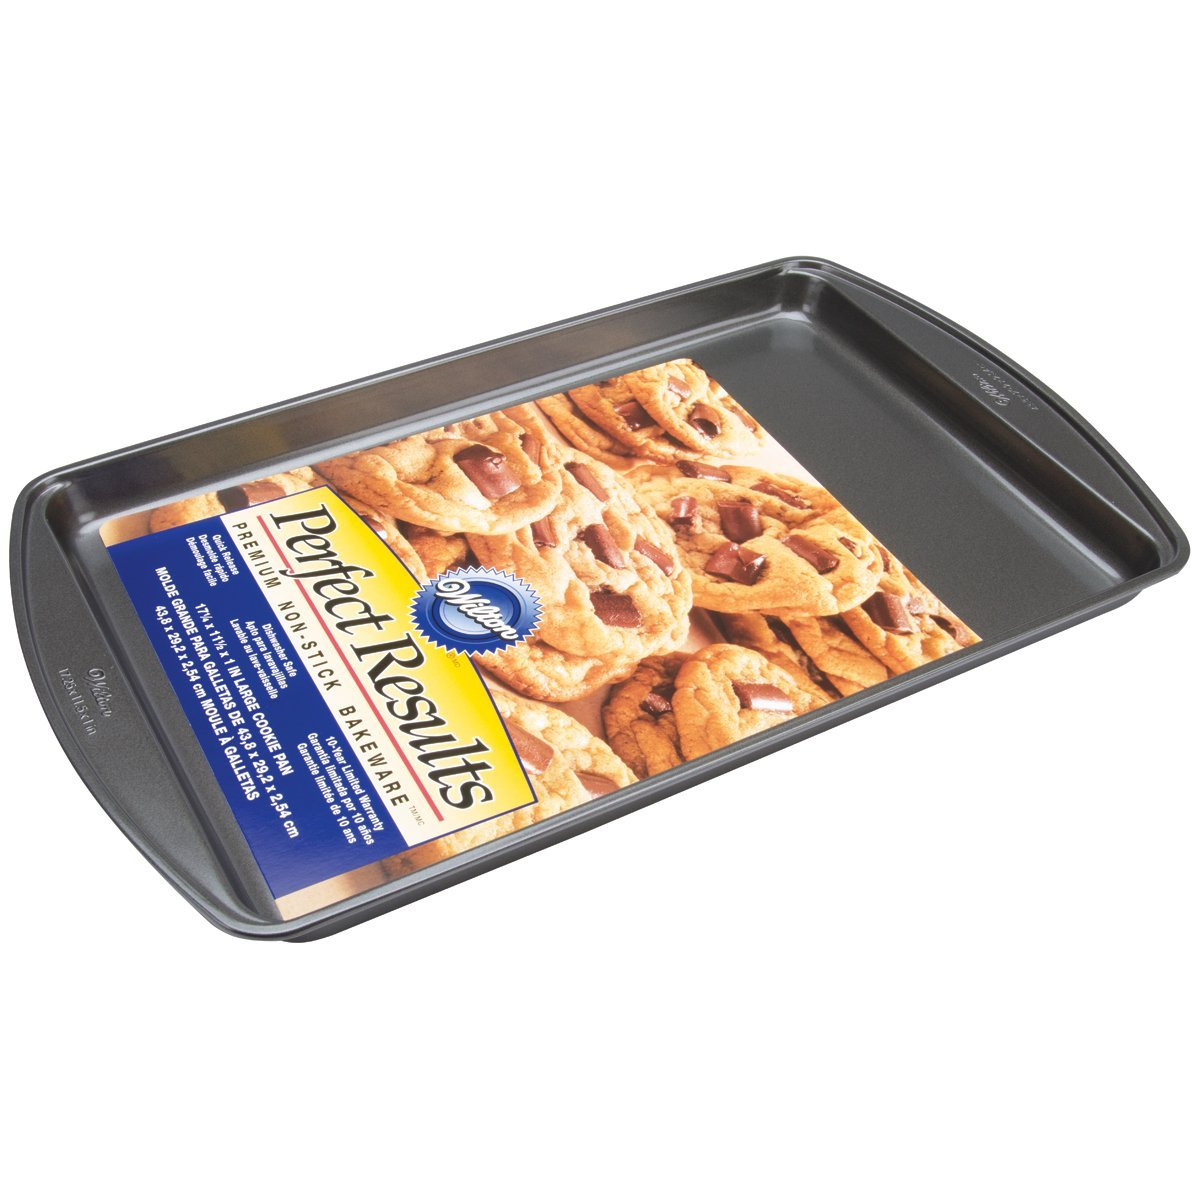 2105-6795 Perfect Results 17.25 11.5-Inch Nonstick Cookie Pan, Large LARGE, Ship from USA,Brand Wilton by